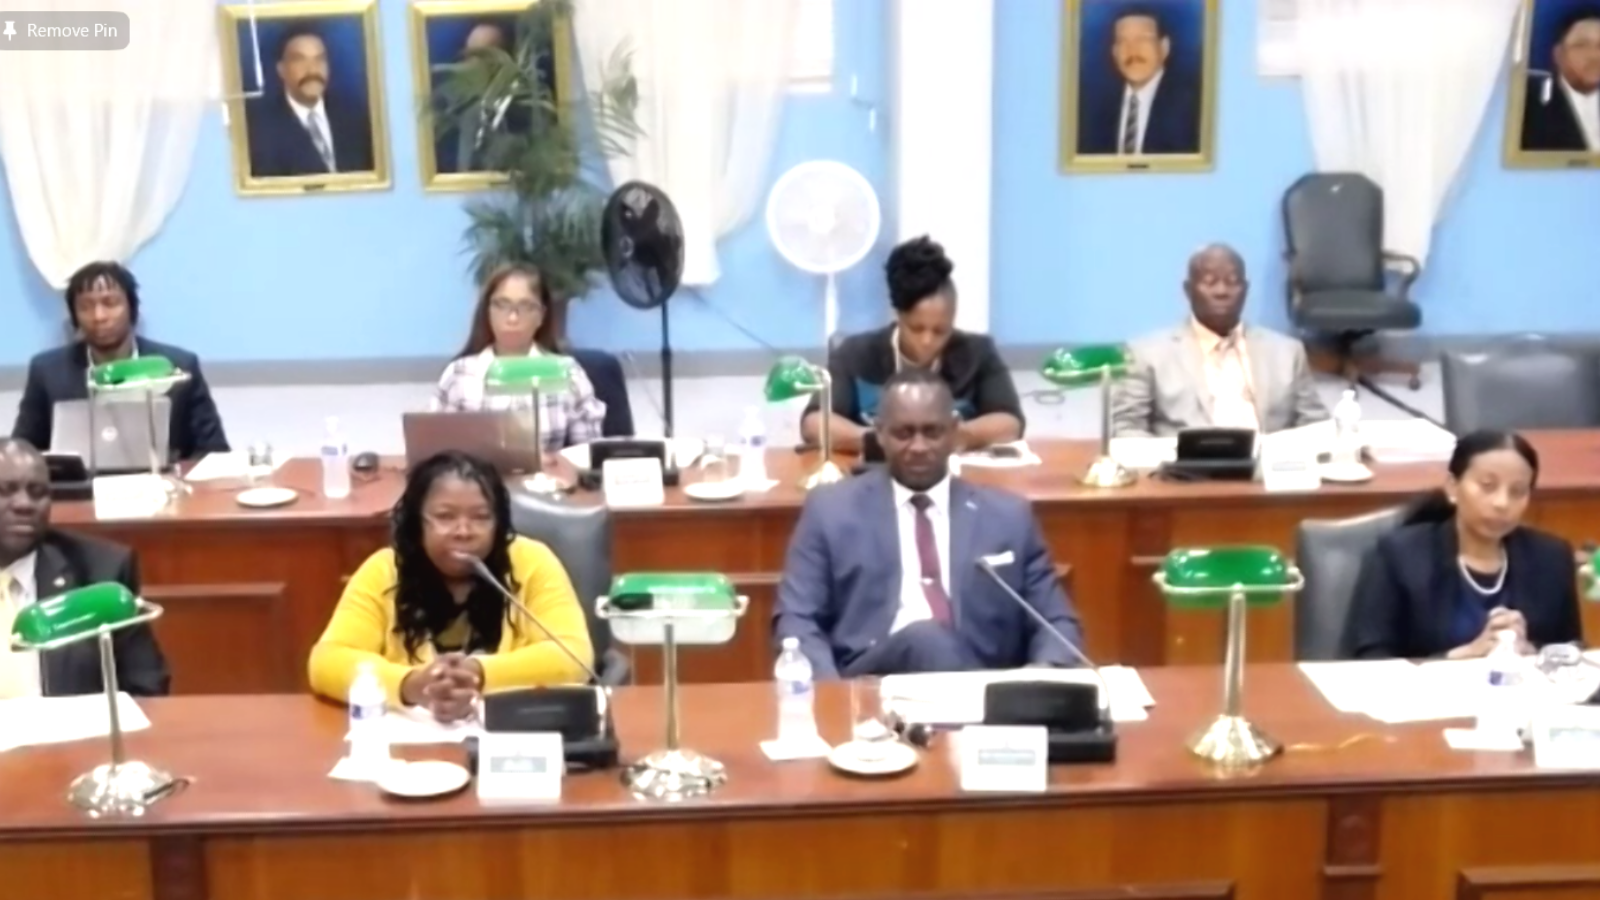 Members of the Turks and Caicos Islands Public Accounts Committee attend training, July 2021.